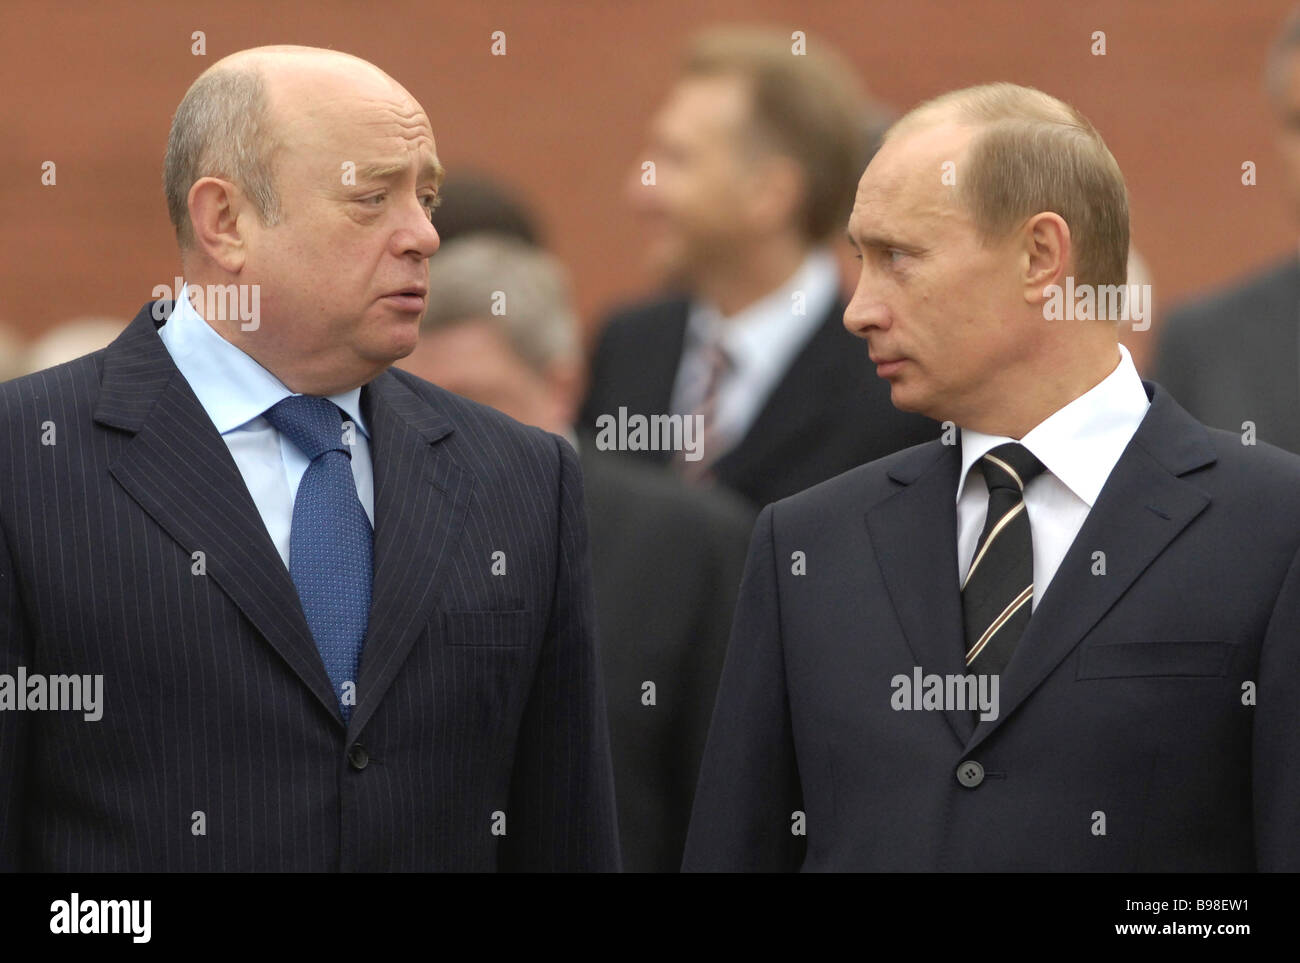 Russian President Vladimir Putin and Prime Minister Mikhail Fradkov right to left watch guard of honor march byStock Photo